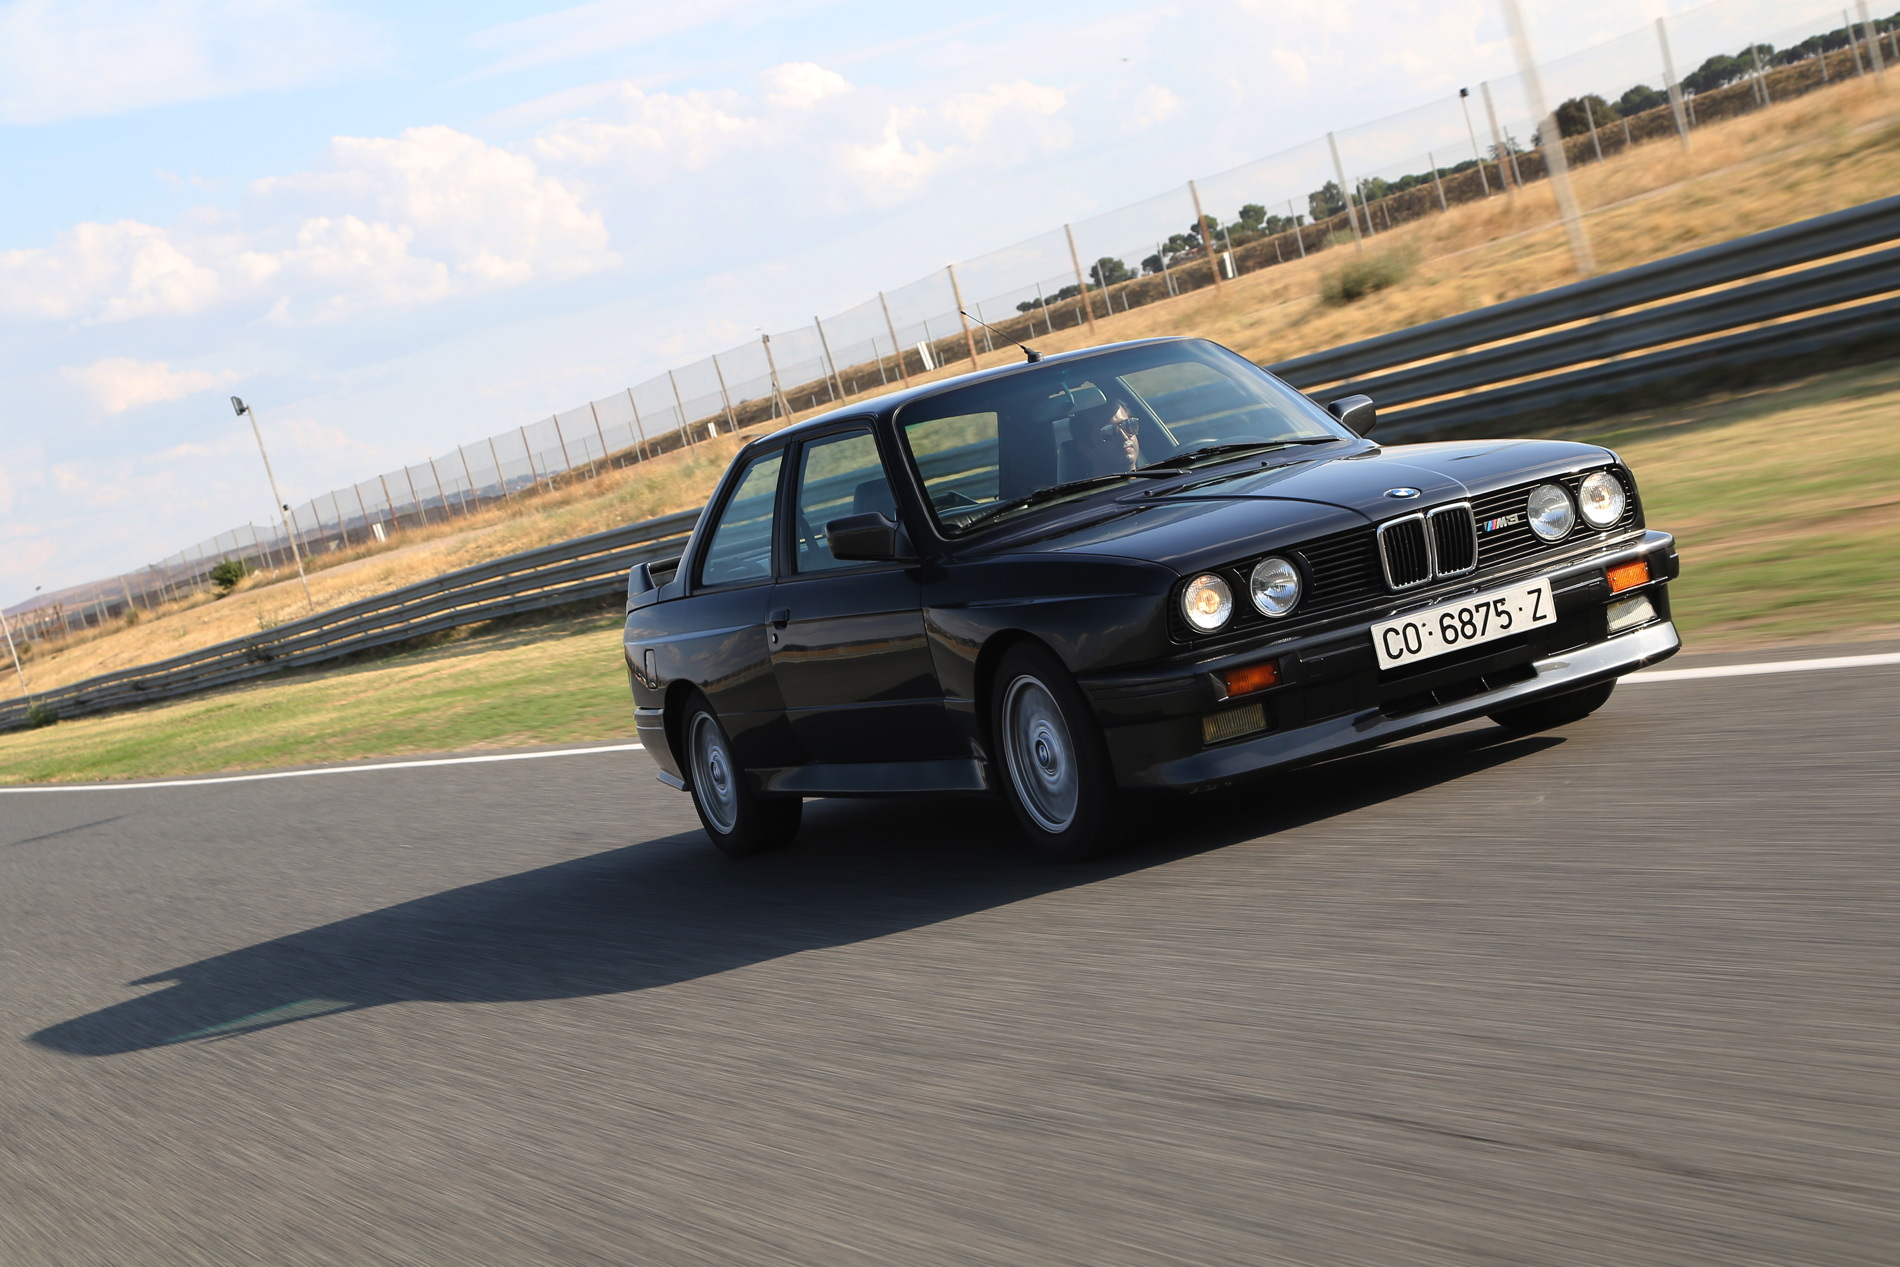 BMW M3 E30 photos 5